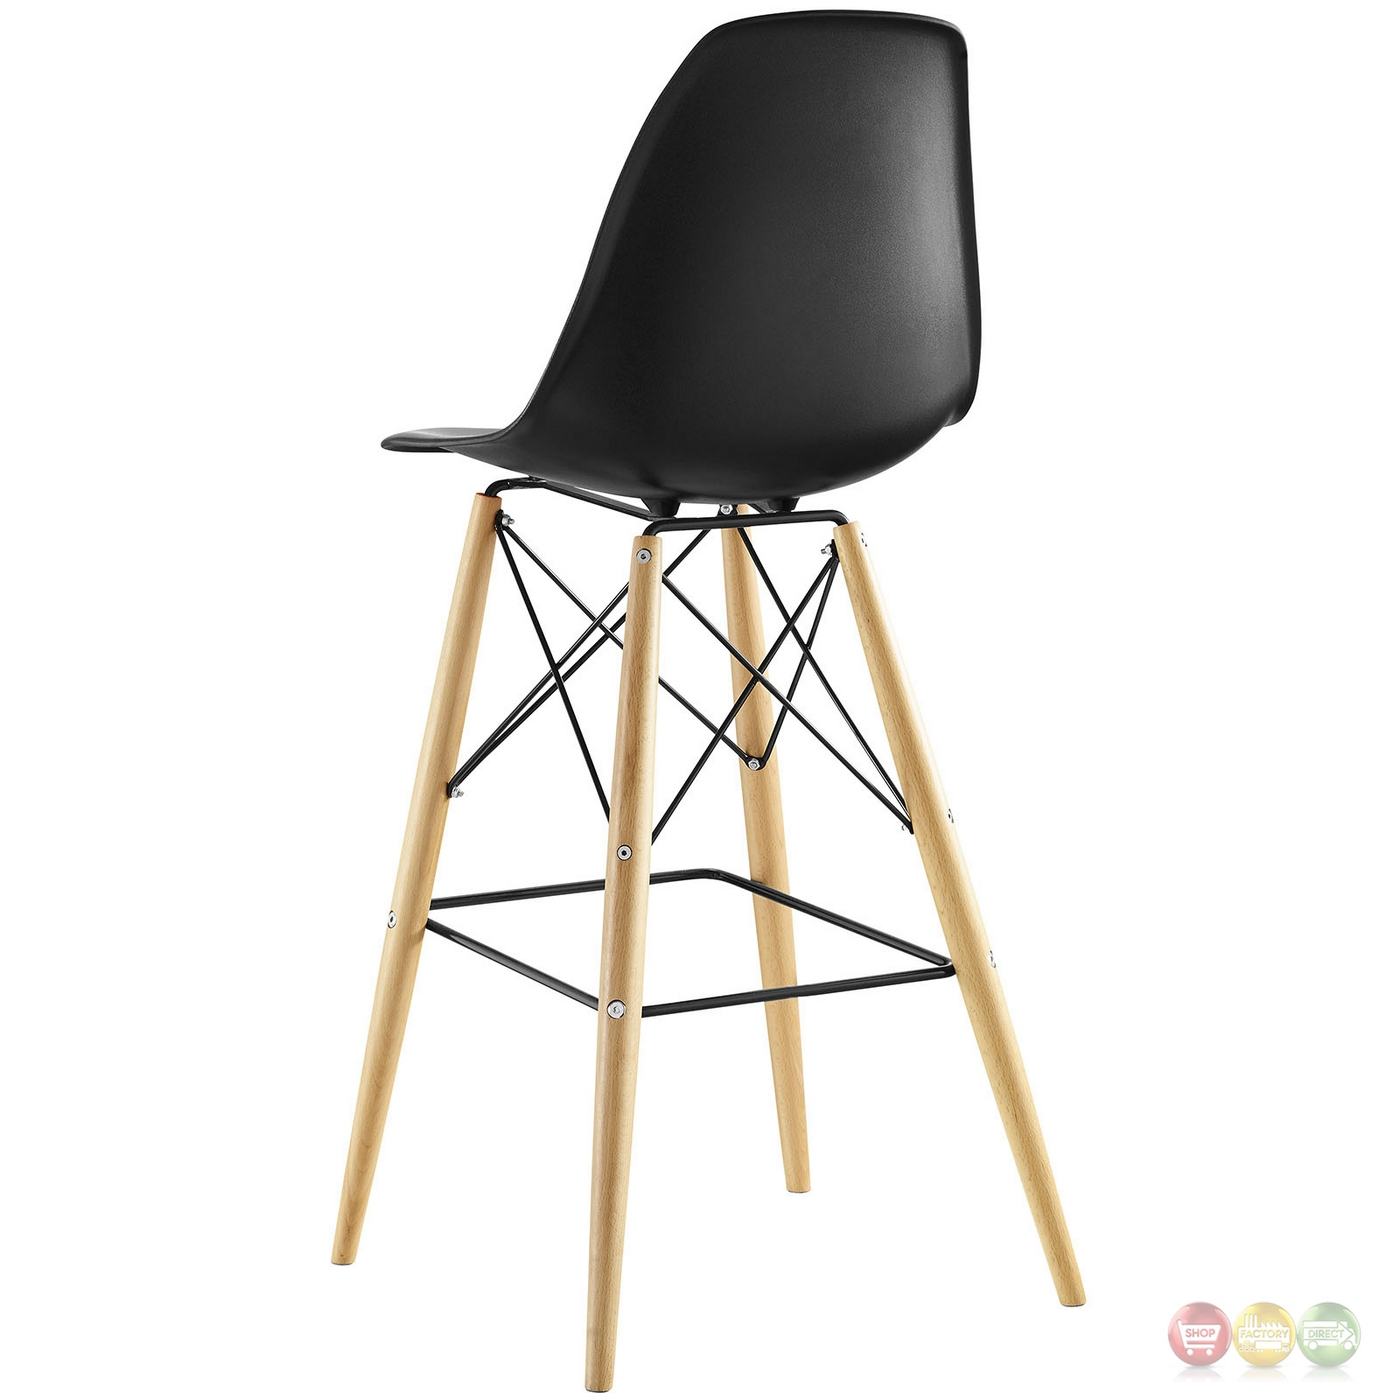 black plastic chair with wooden legs ergonomic attachment set of 2 pyramid deep seat molded bar w